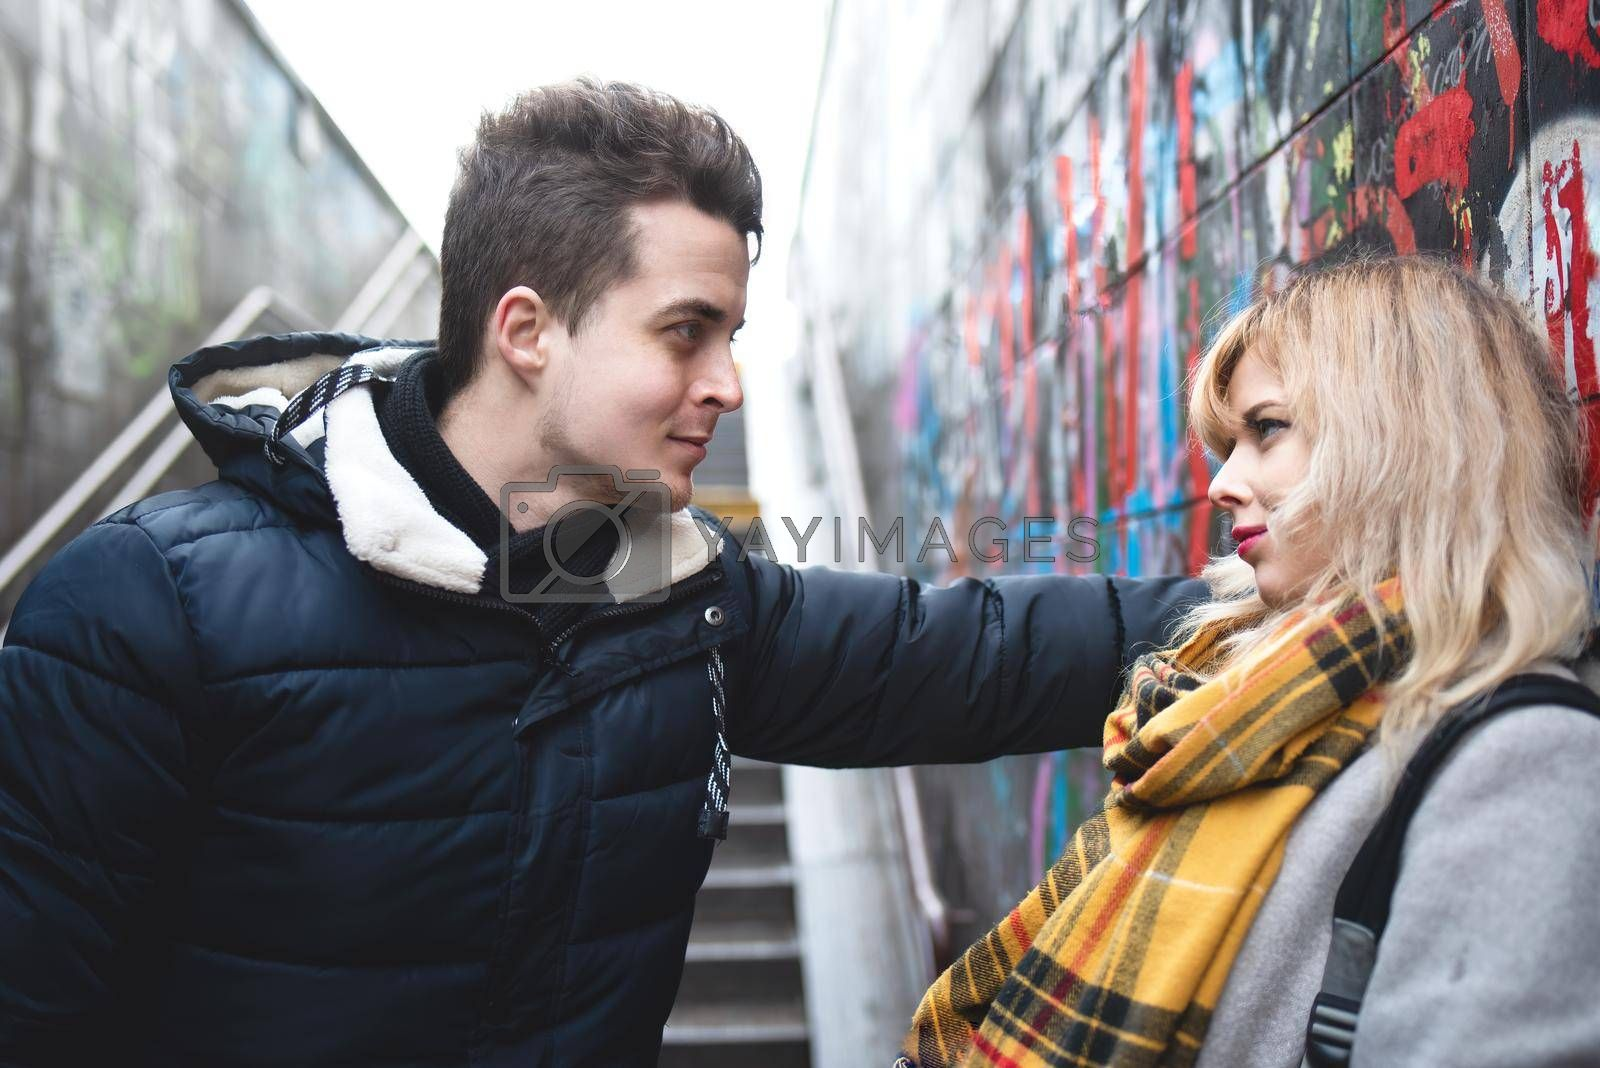 Royalty free image of couple - girl and guy near the wall by Nickstock